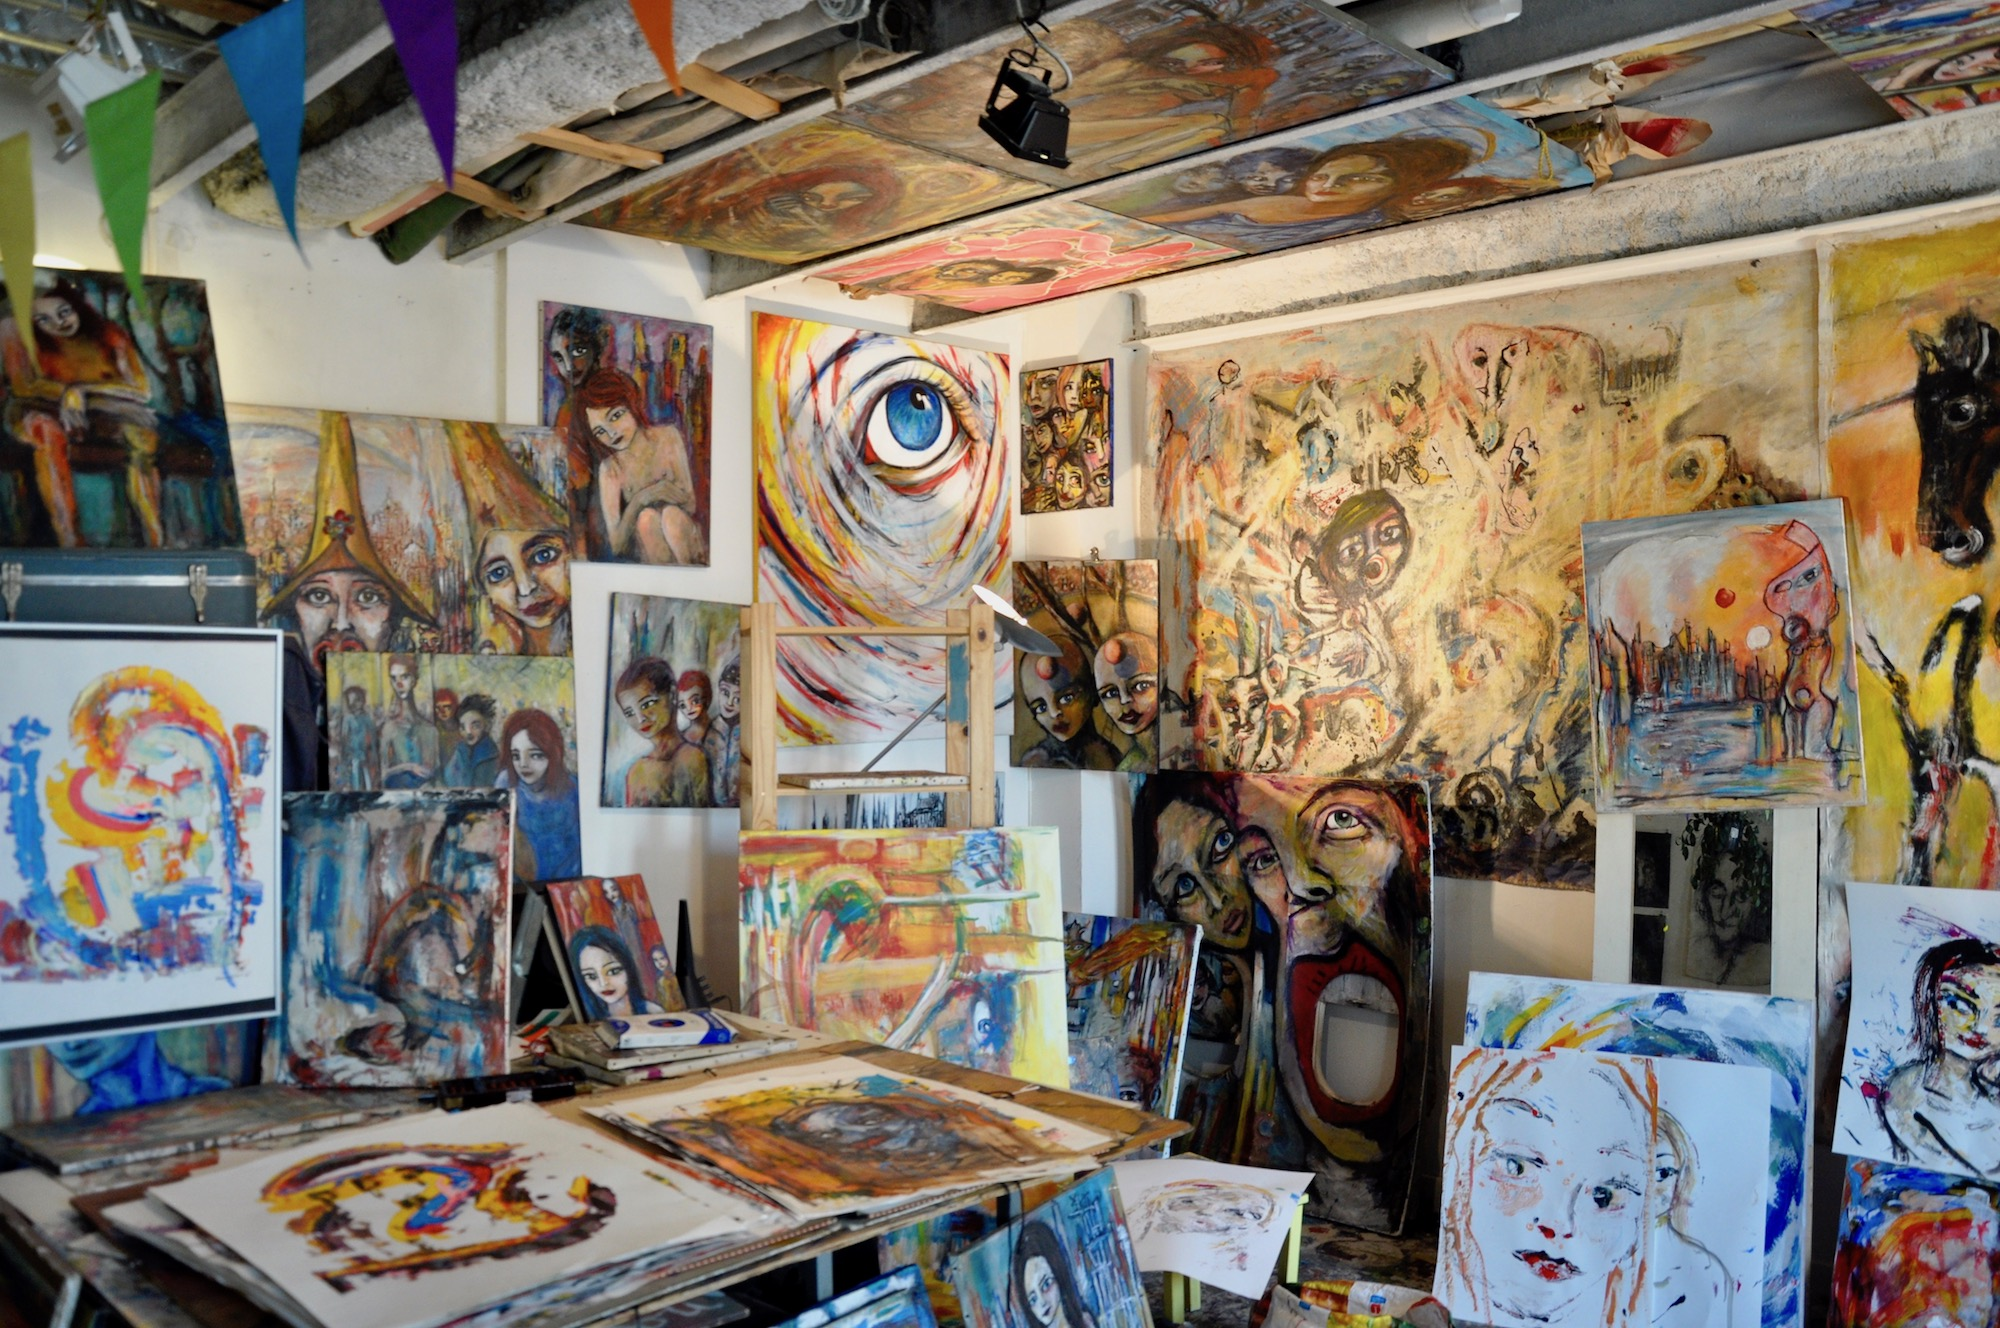 HiP Paris Blog discovers the many artist squats in Paris like Espace 33 which is full of paintings by various artists.